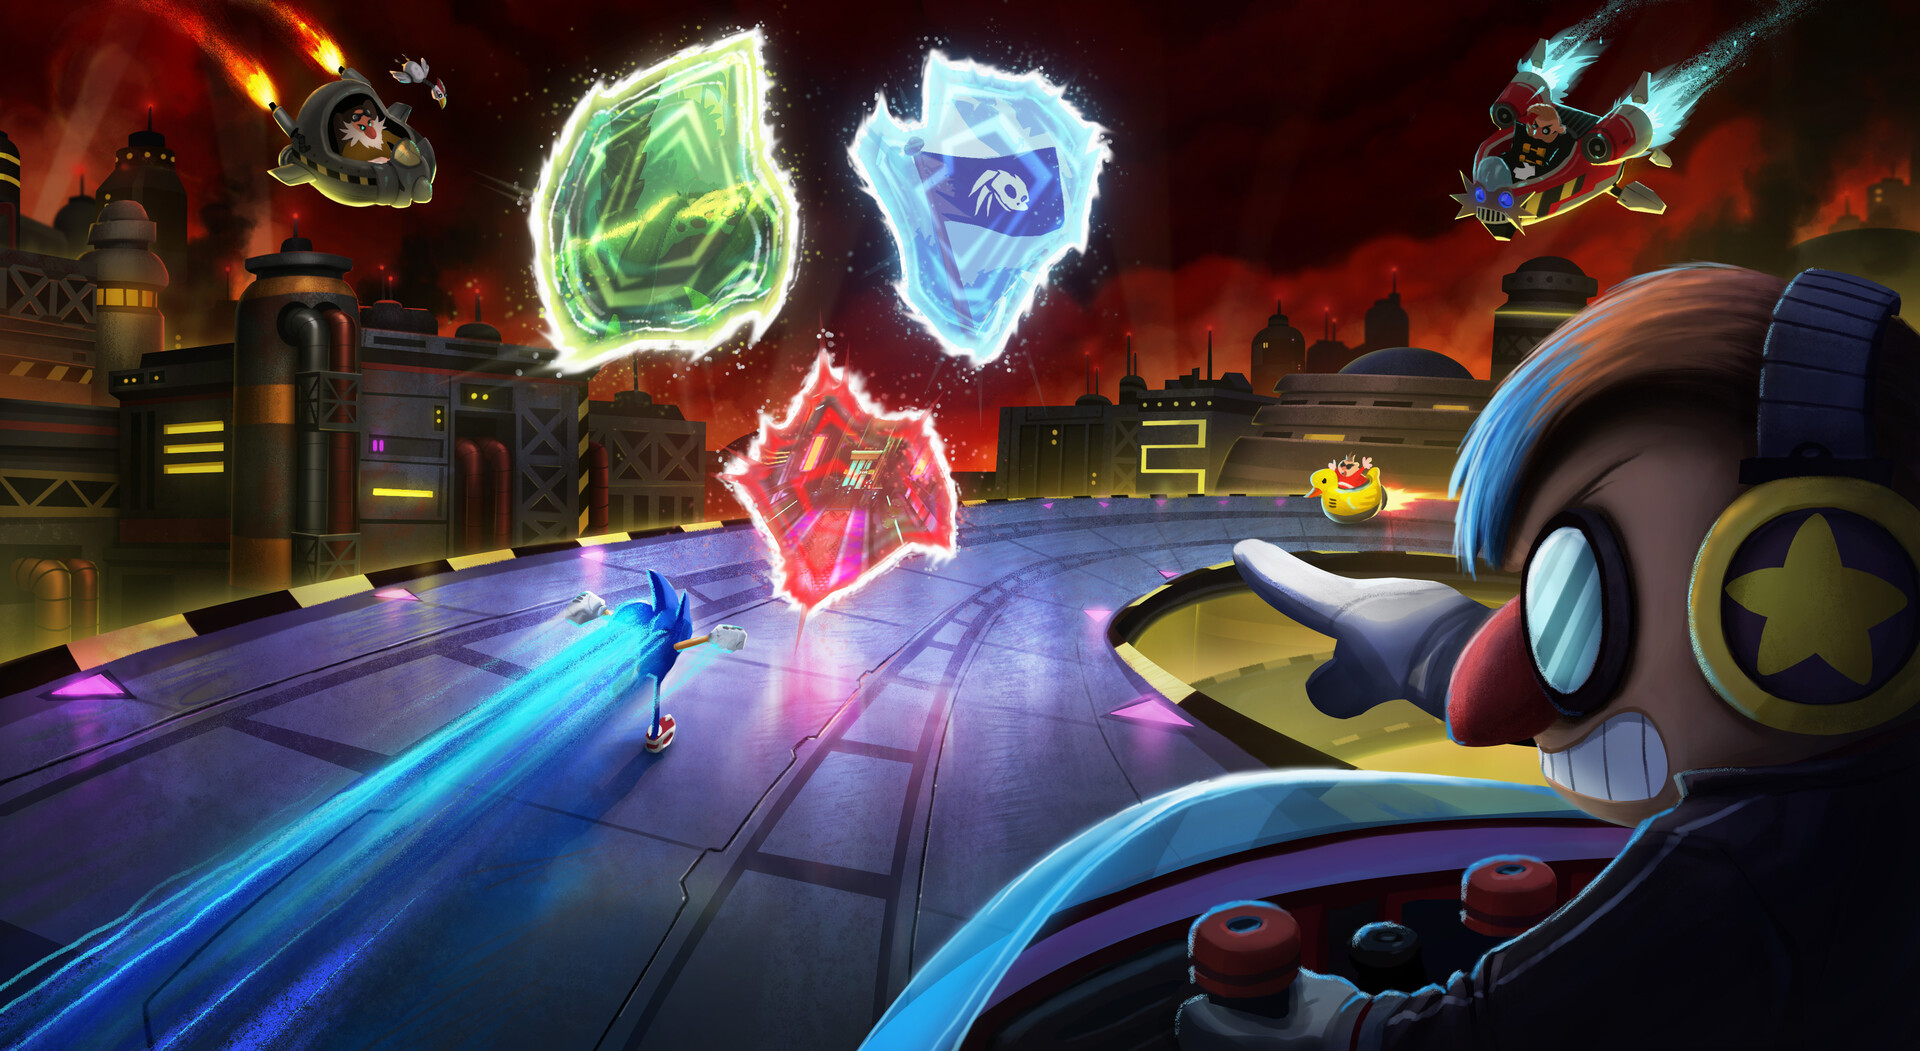 Concept art of Sonic the Hedgehog running toward portals while being chased by multiple Robotniks